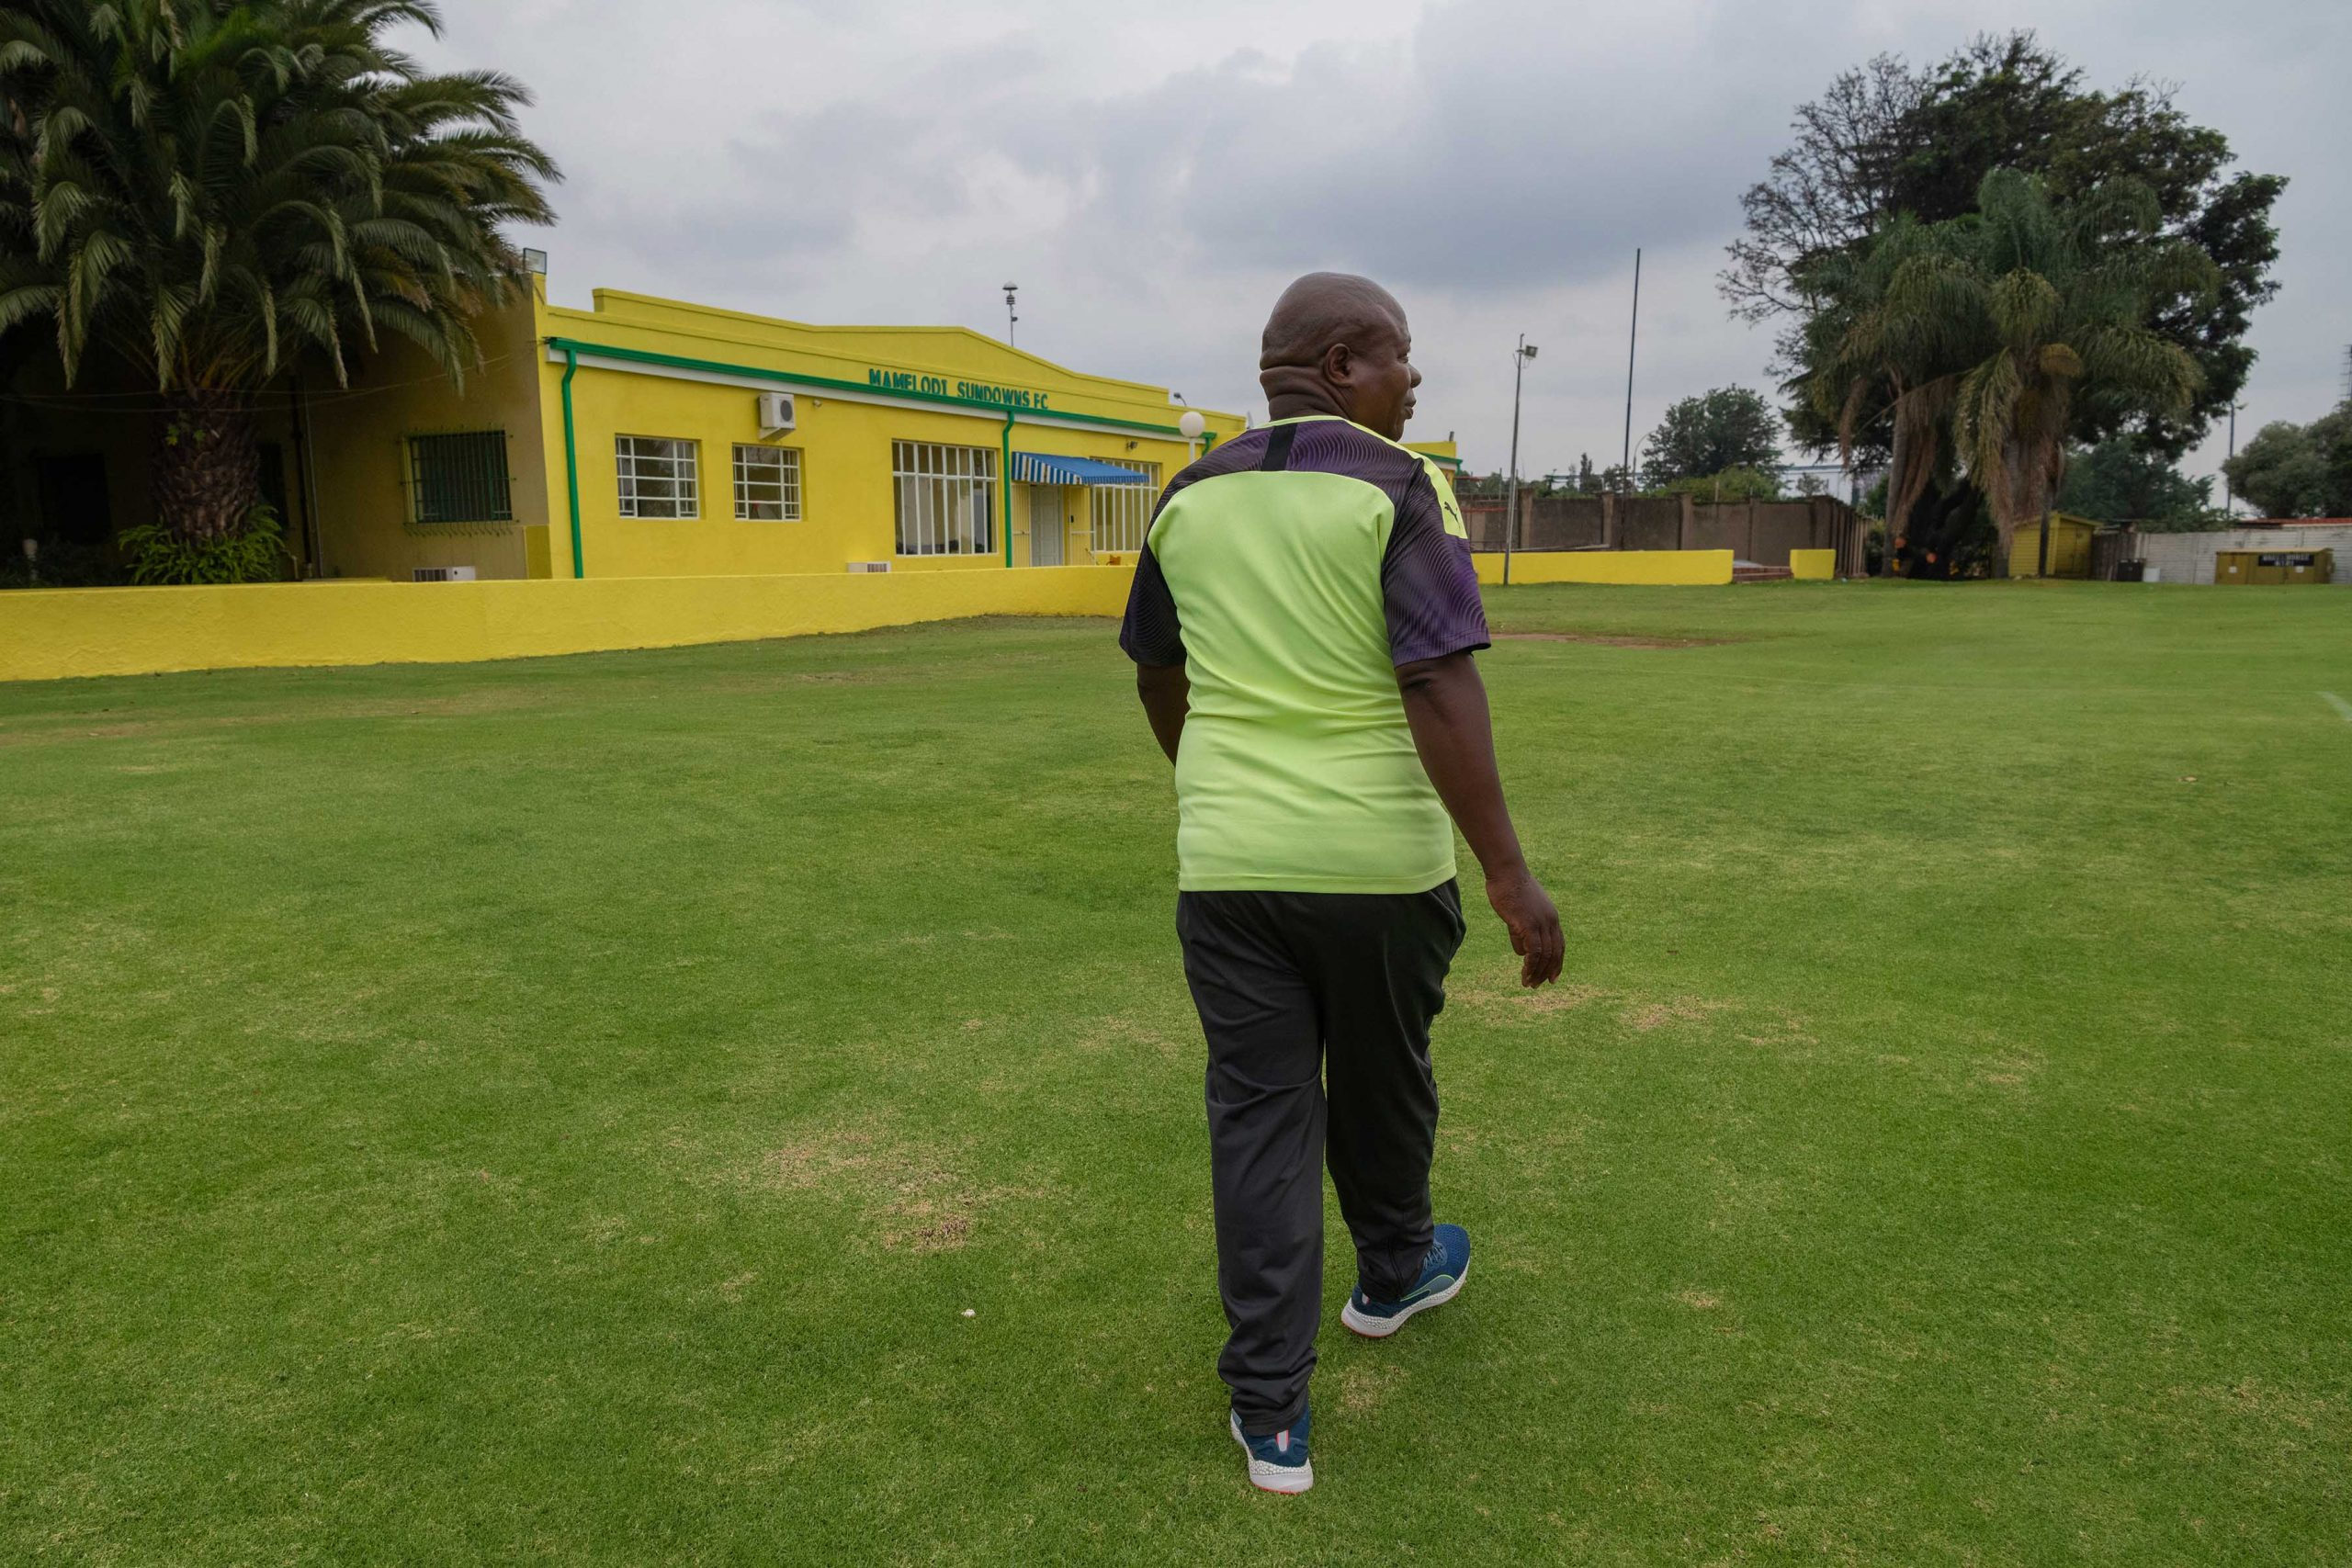 20 February 2020: Freddy Zungu at the Sundowns training facility in Chloorkop.